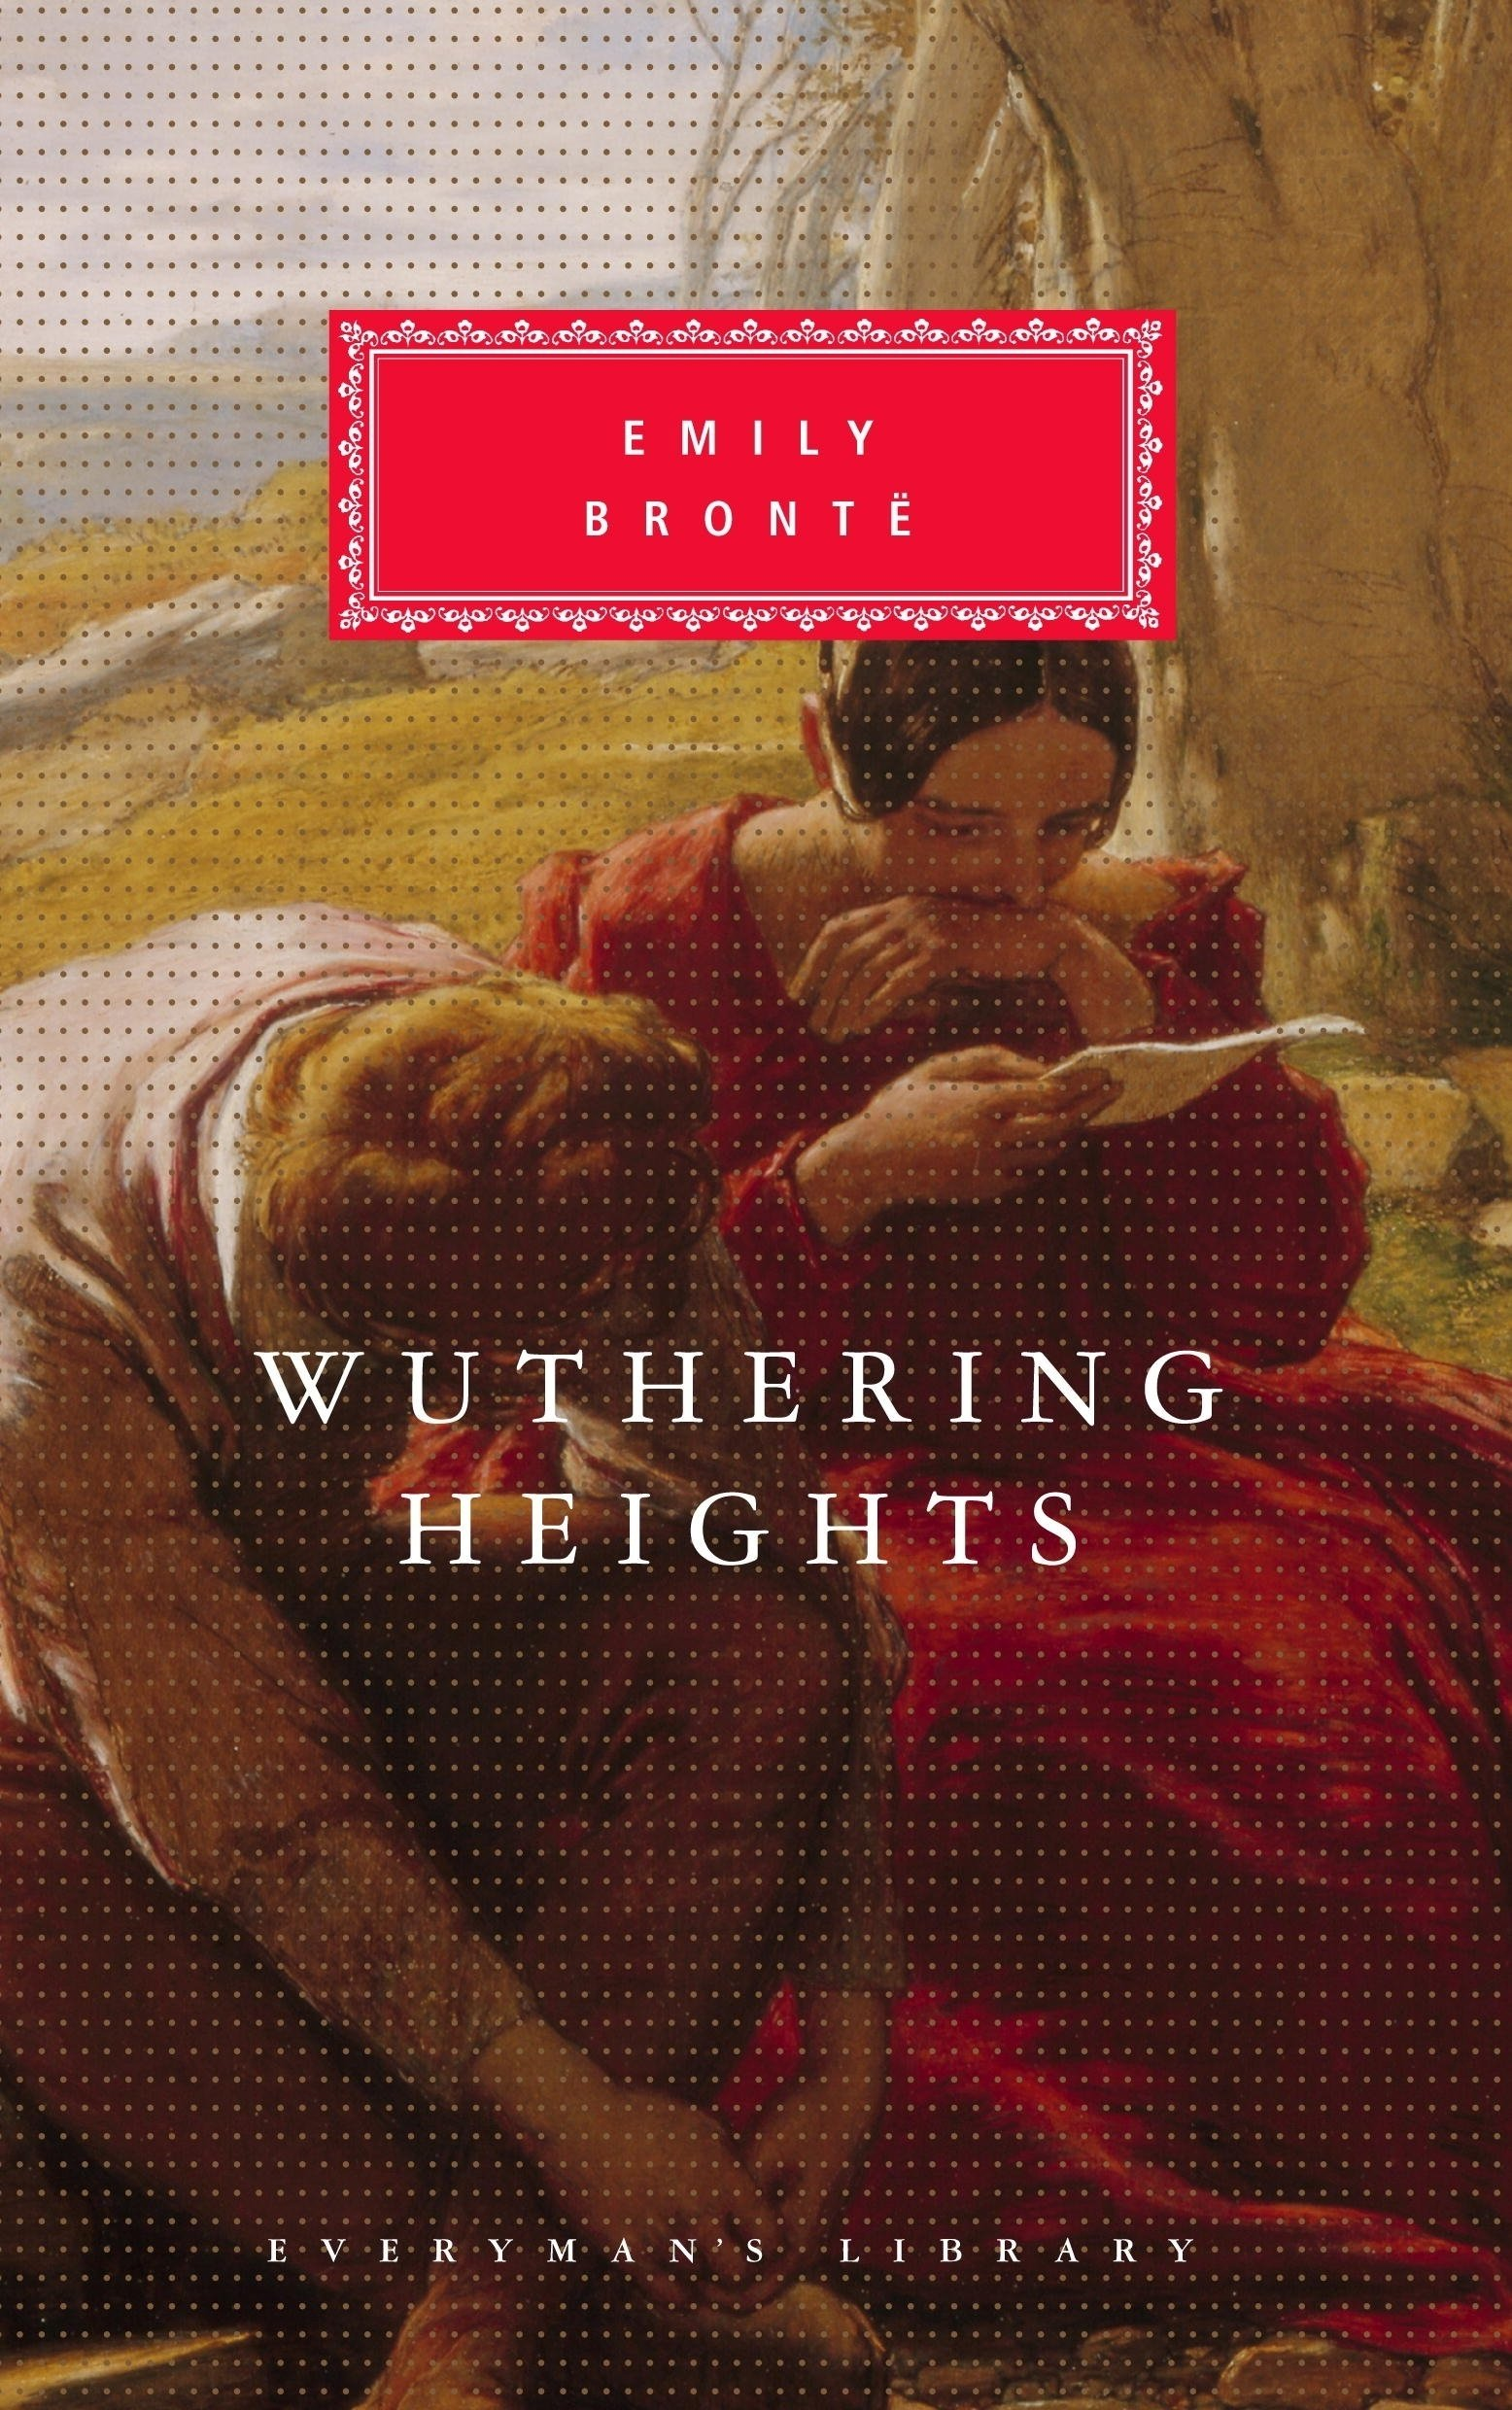 The title of the novel comes from the Yorkshire manor on the moors of the story. The narrative centres on the all-encompassing, passionate, but ultimately doomed love between Catherine Earnshaw and Heathcliff, and how this unresolved passion eventually destroys them and the people around them.